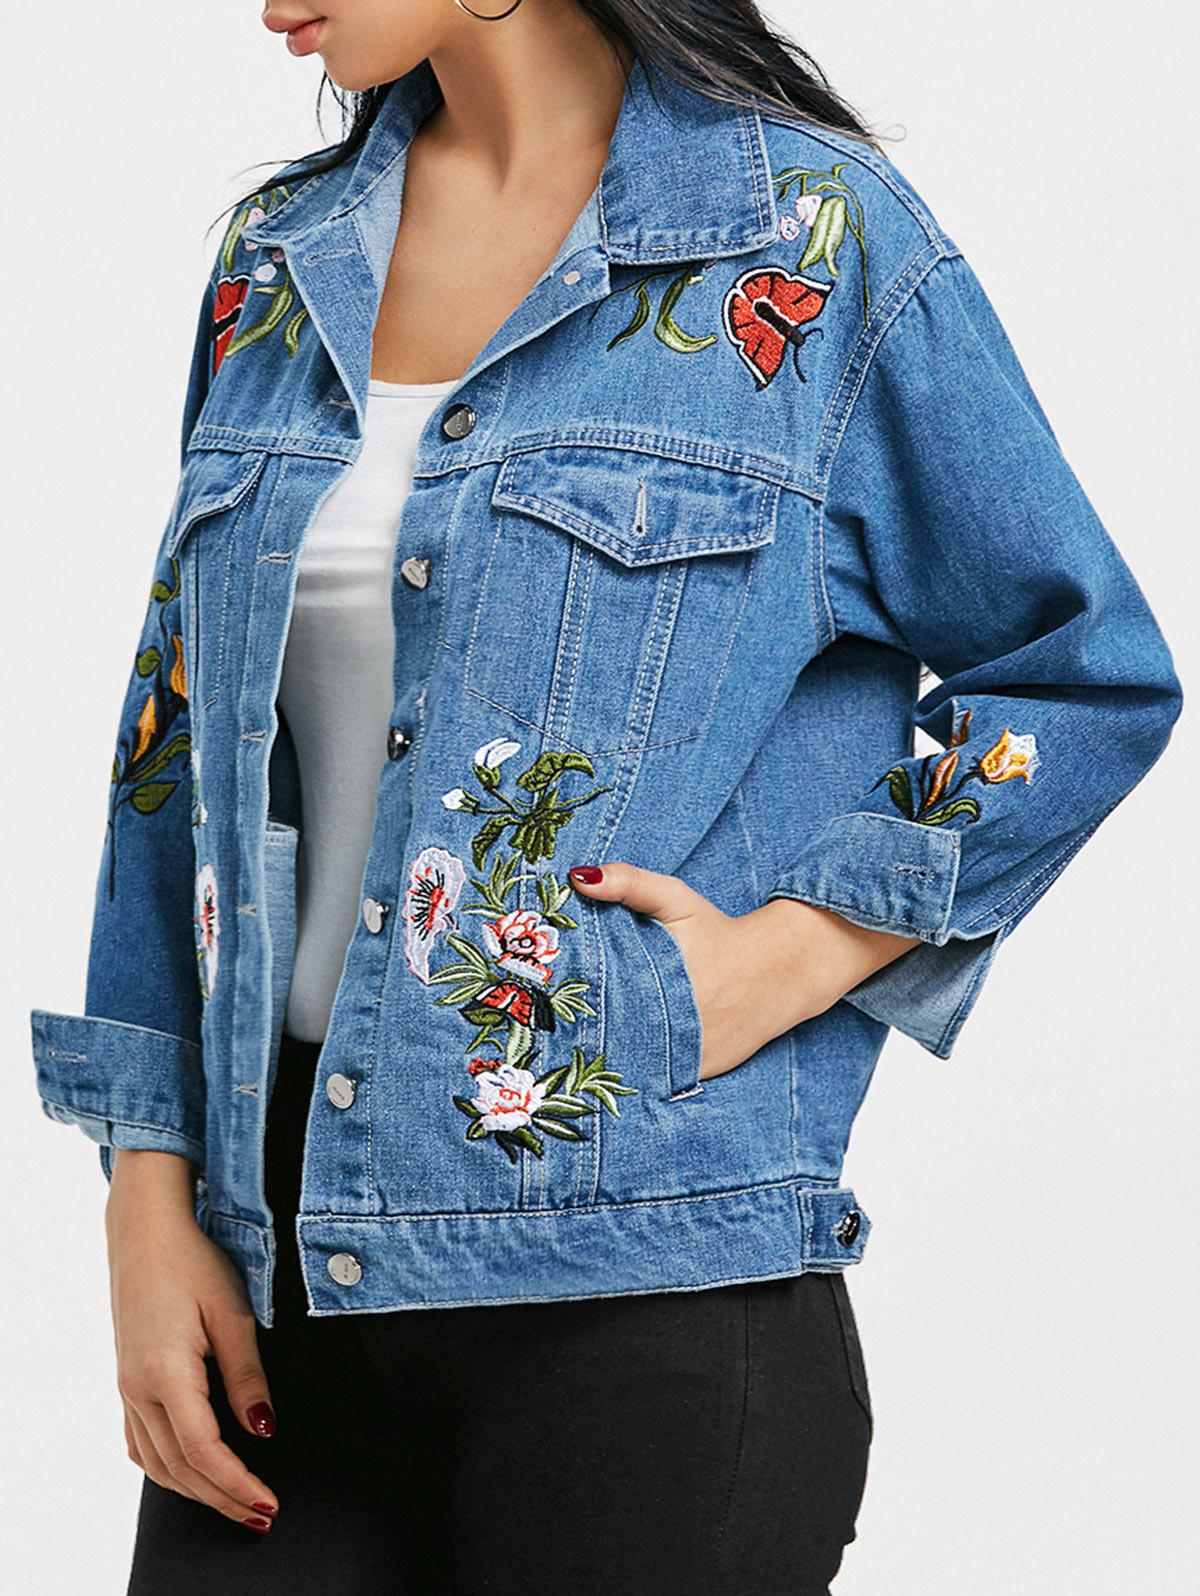 Affordable Floral Embroidery Jean Jacket